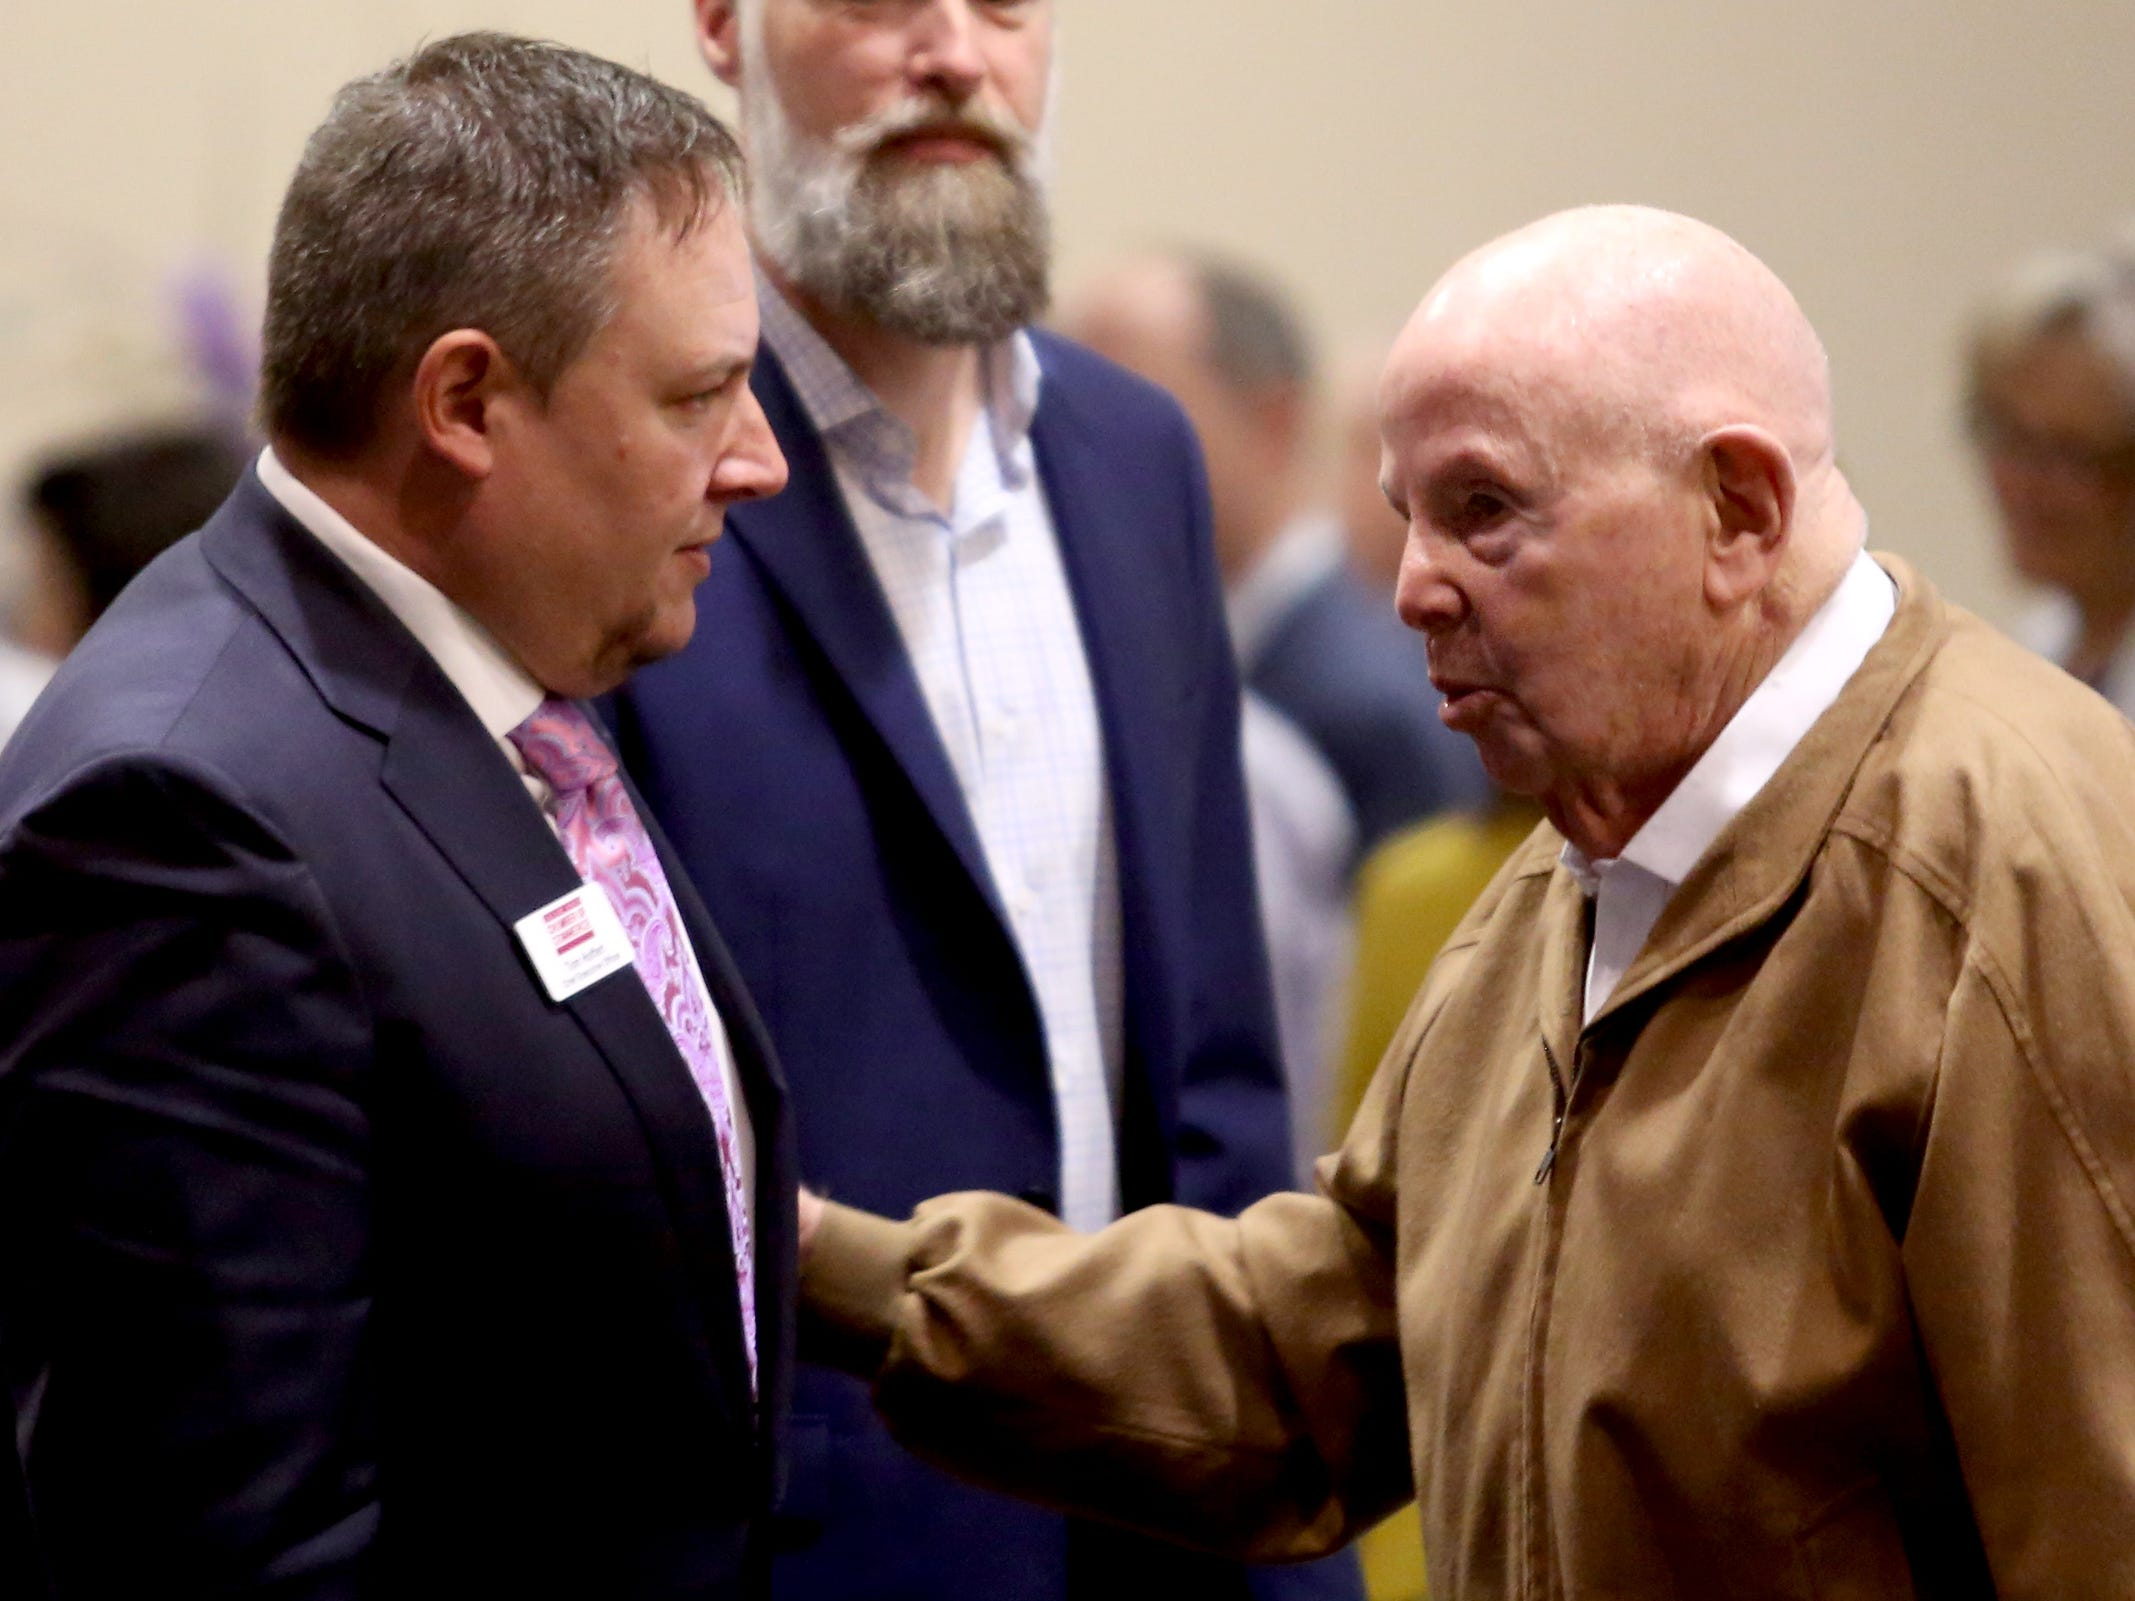 Tom Hoffert, left, the chief executive officer of the Salem Area Chamber of Commerce, welcomes Gerry Frank to the monthly Forum Speaker Series at the Salem Convention Center on May 13, 2019.